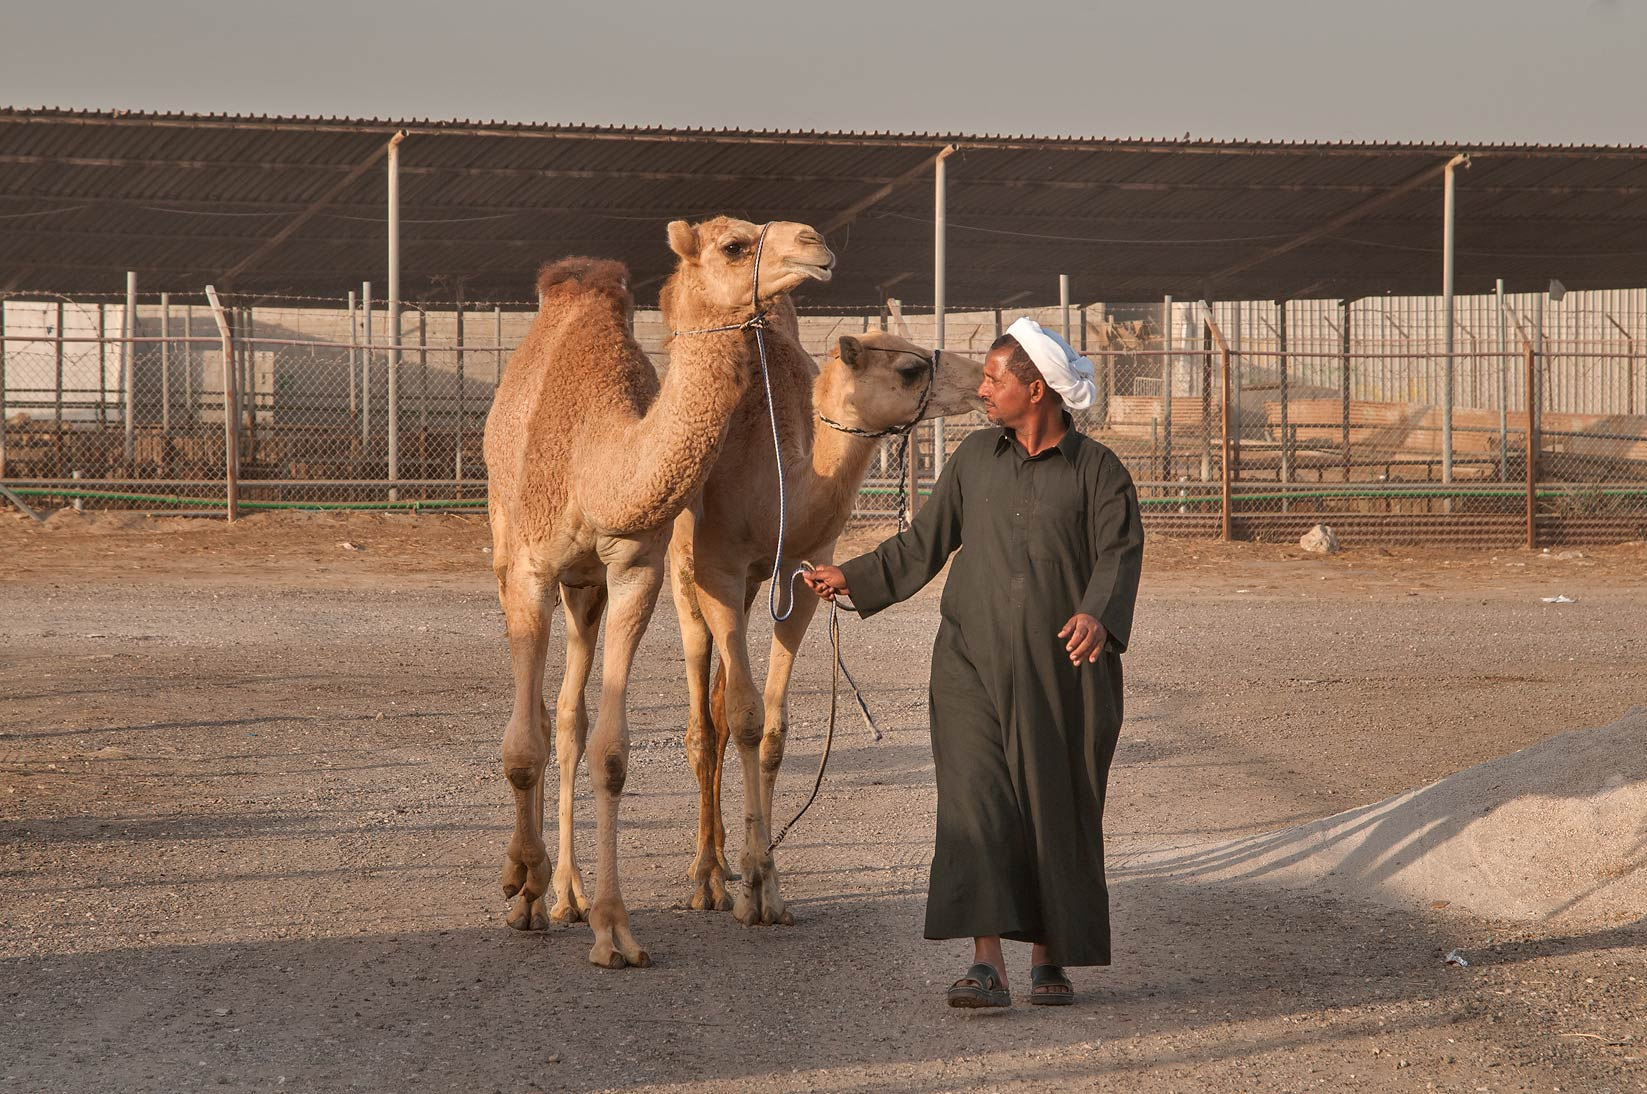 Two camels in Livestock Market, Wholesale Markets area. Doha, Qatar